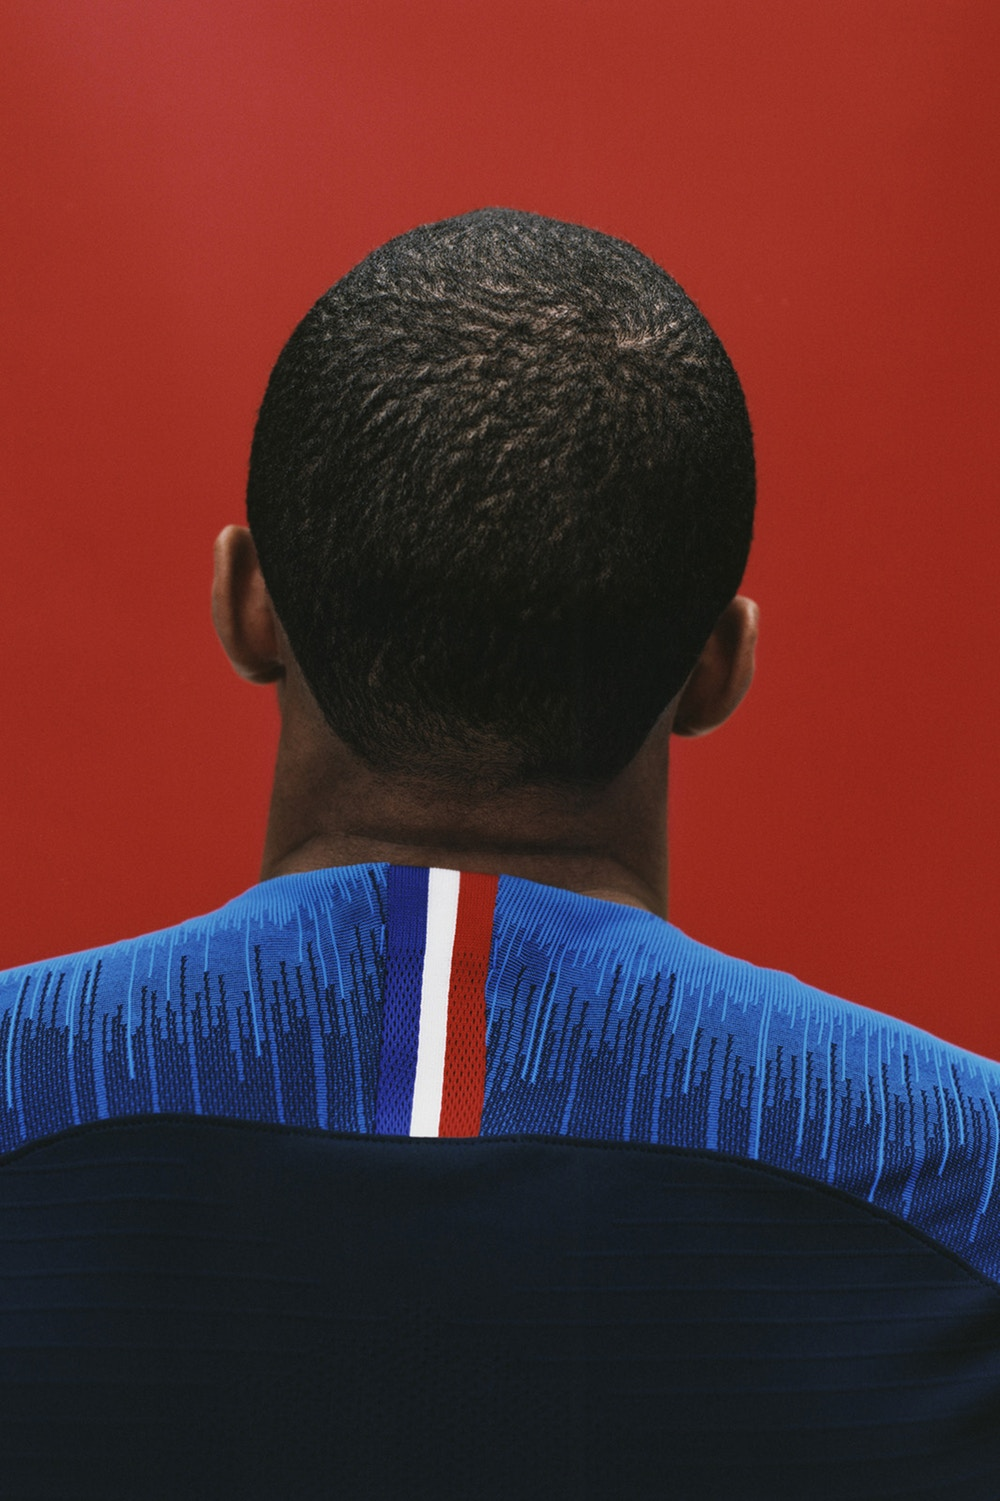 NIKE'S FRANCE 2018 HOME JERSEY FOR THE 2018 WORLD CUP IN RUSSIA